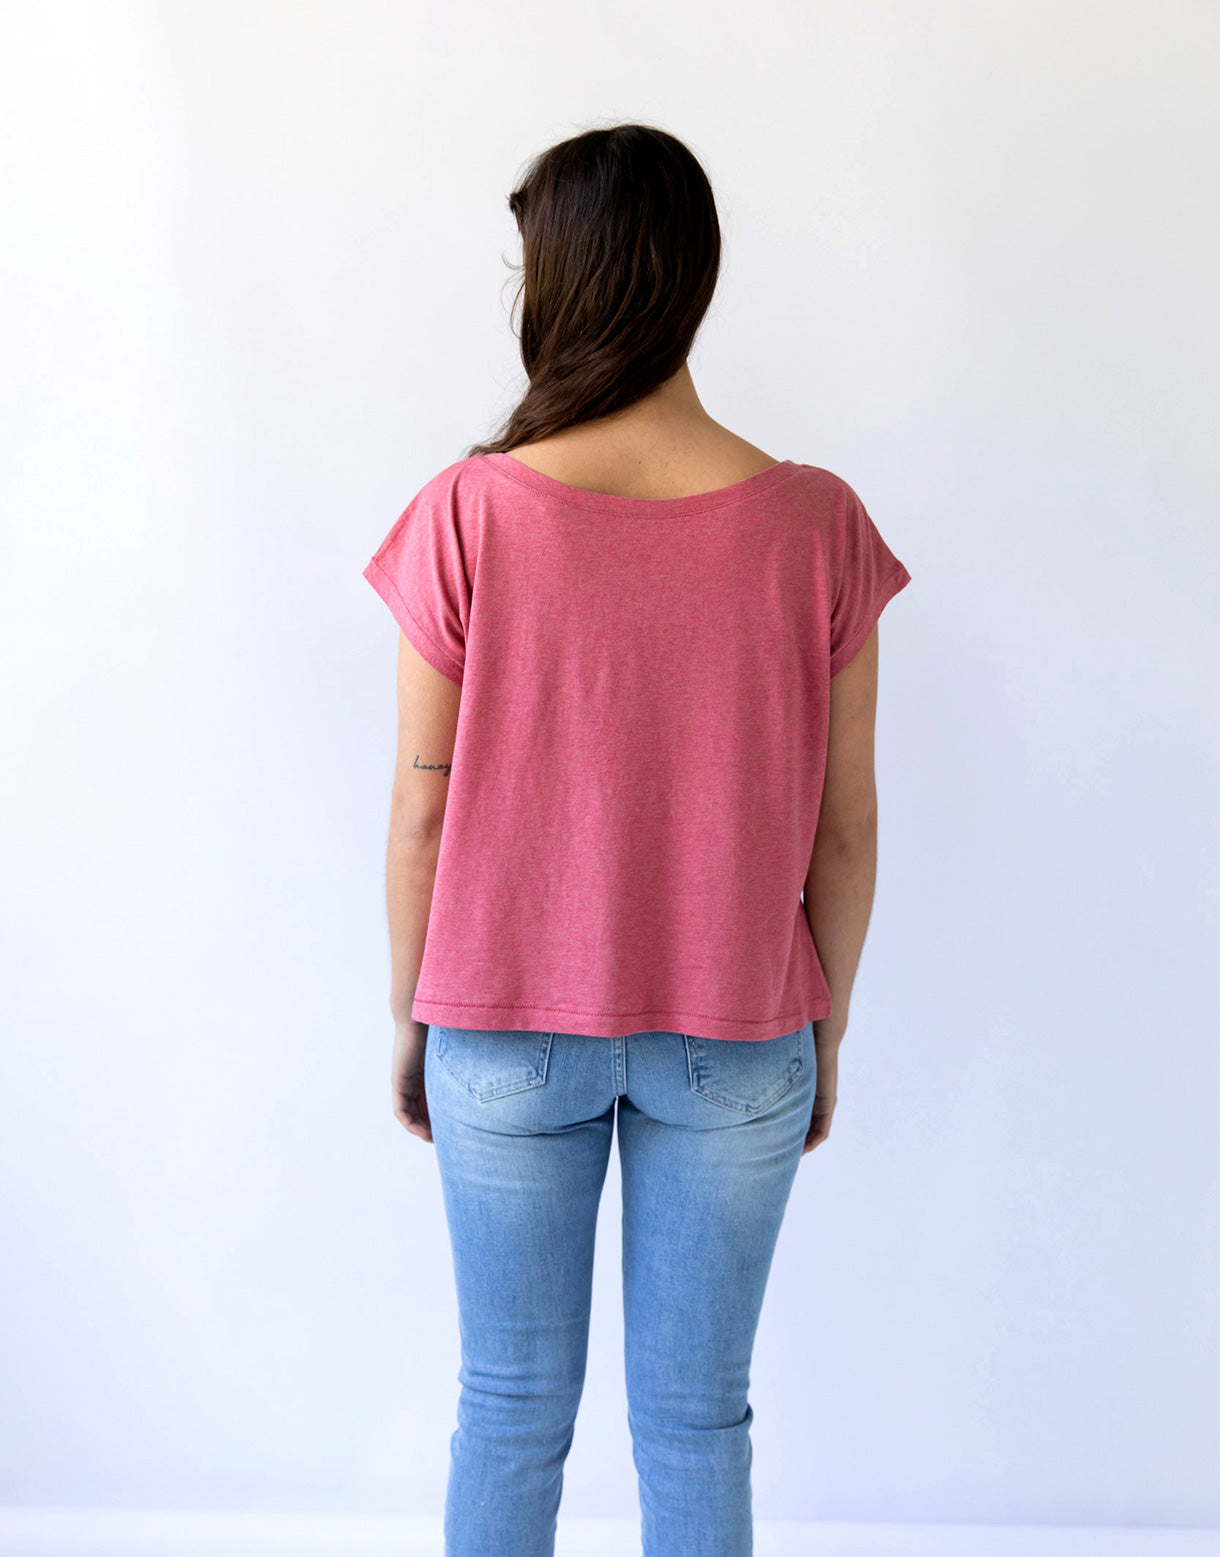 Lana tee in Cranberry *organic cotton